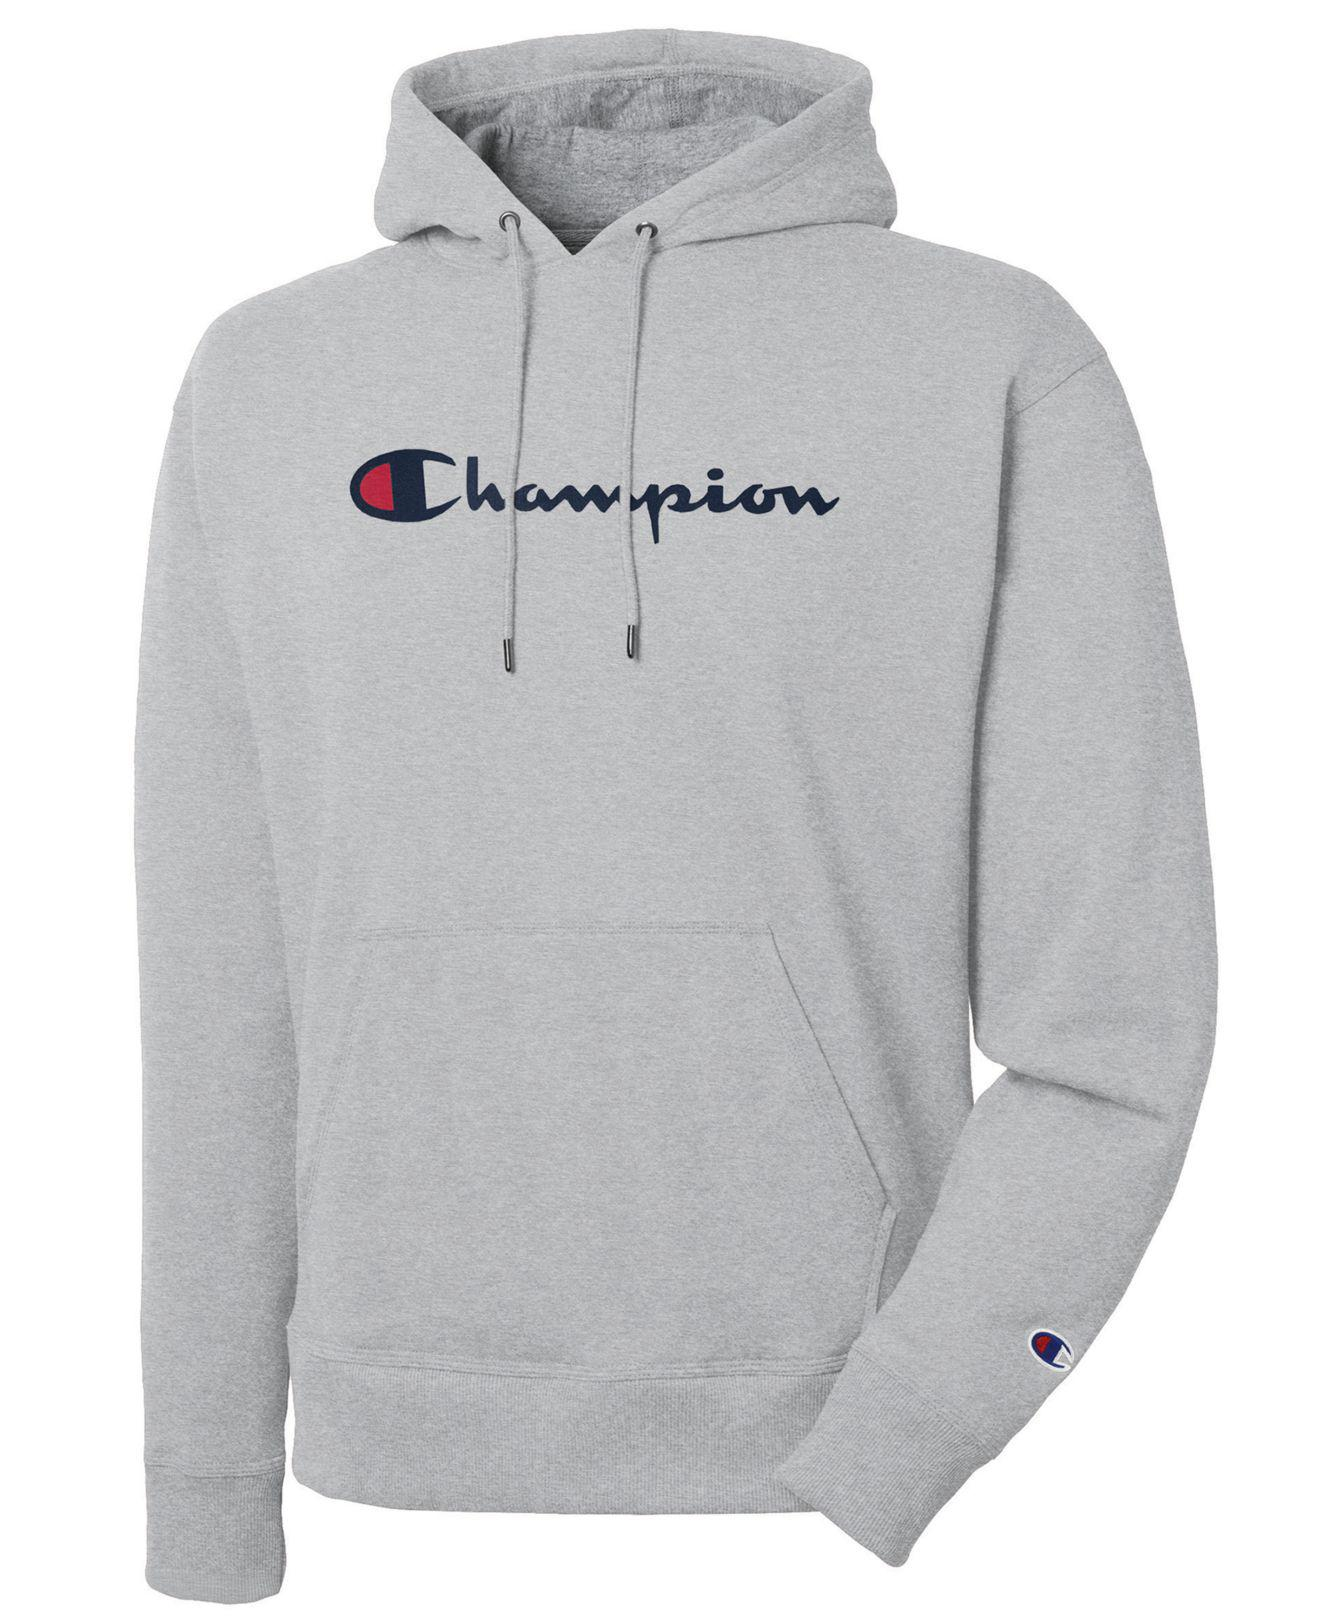 ef08facfda0f Champion - Gray Sweatshirt for Men - Lyst. View fullscreen